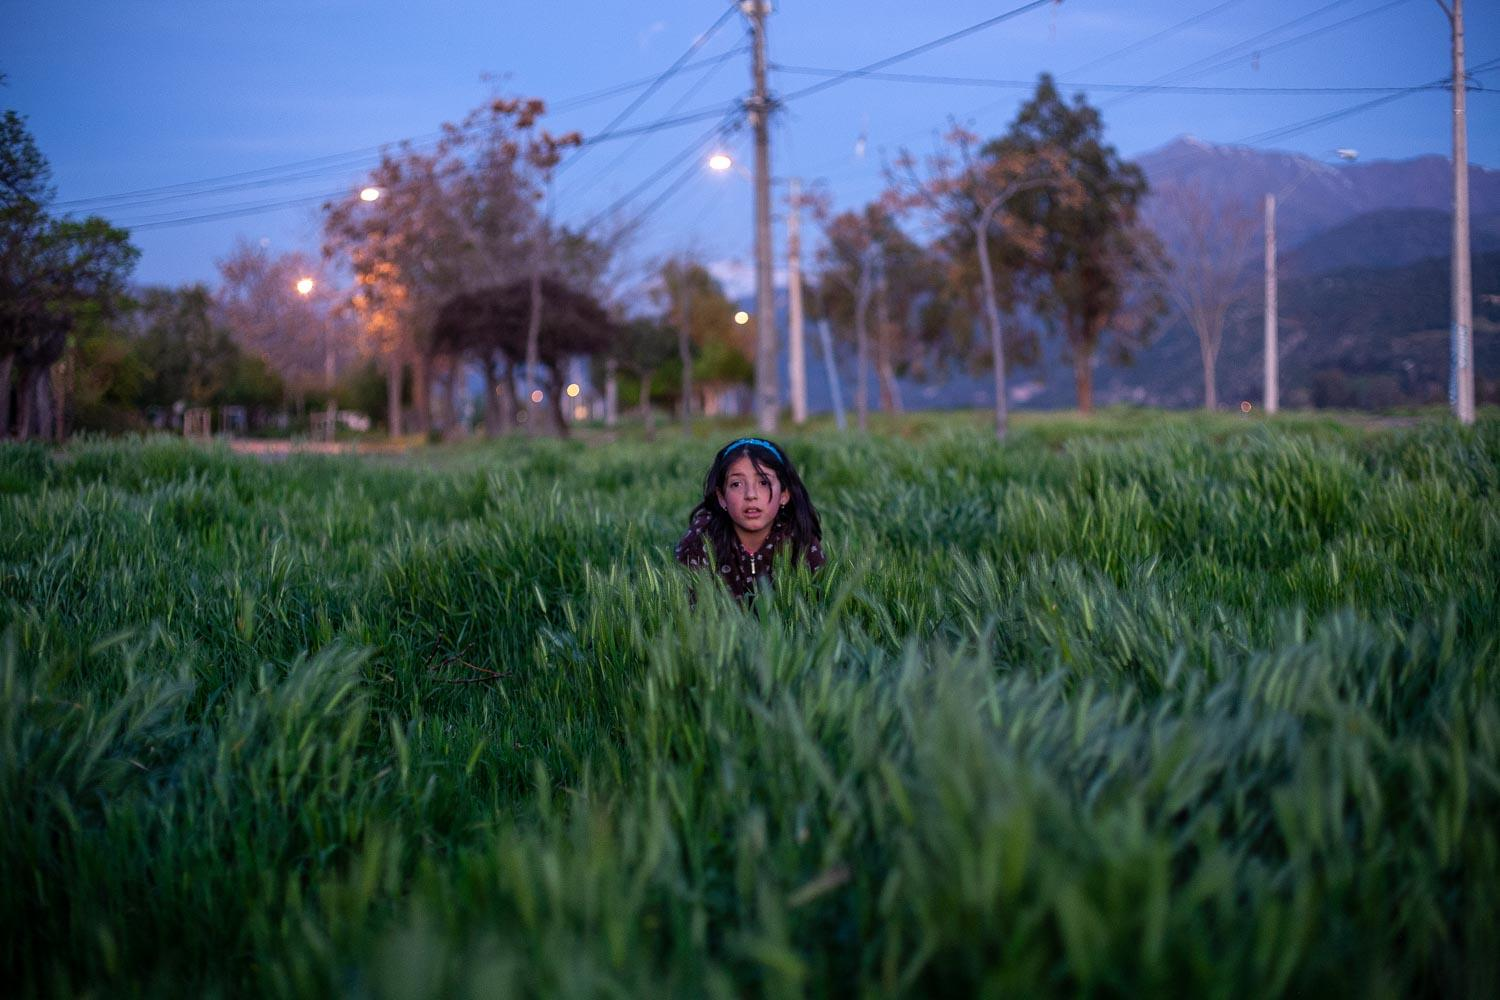 Yara playing in the grass near her home. Puente Alto, Chile. 2010